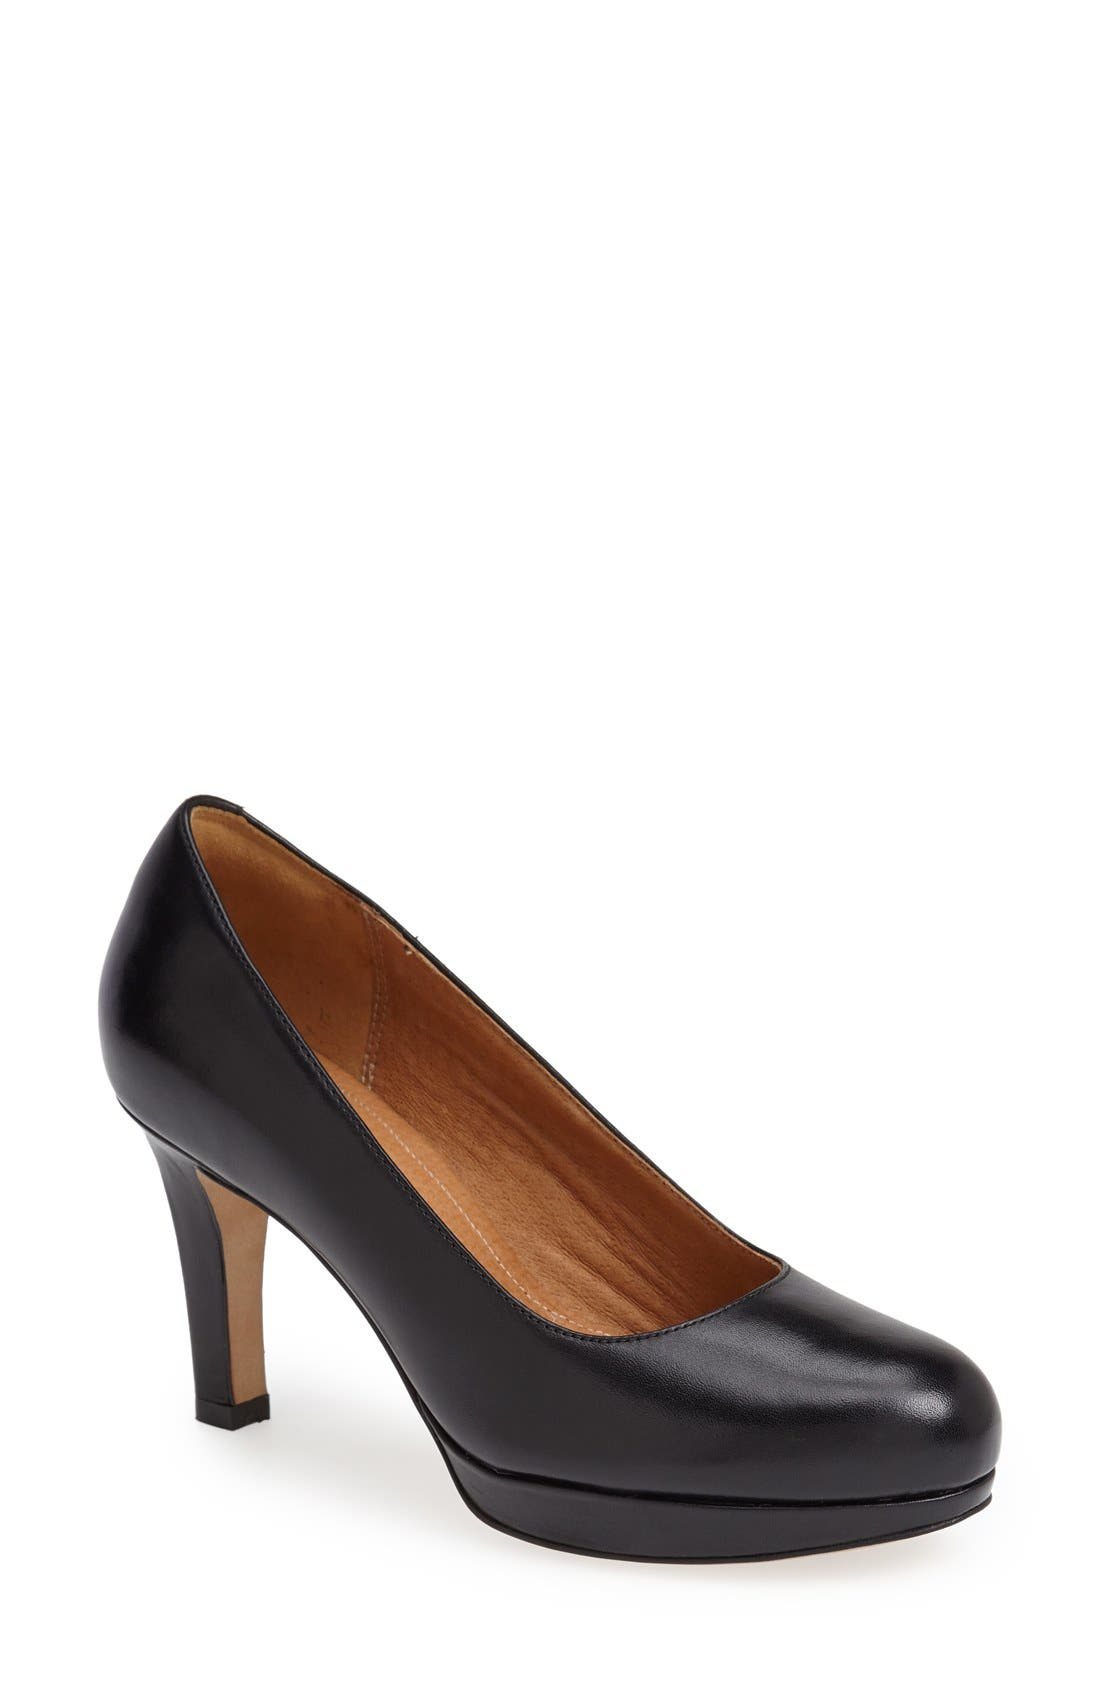 Alternate Image 1 Selected - Clarks® 'Delsie Bliss' Platform Pump (Women)